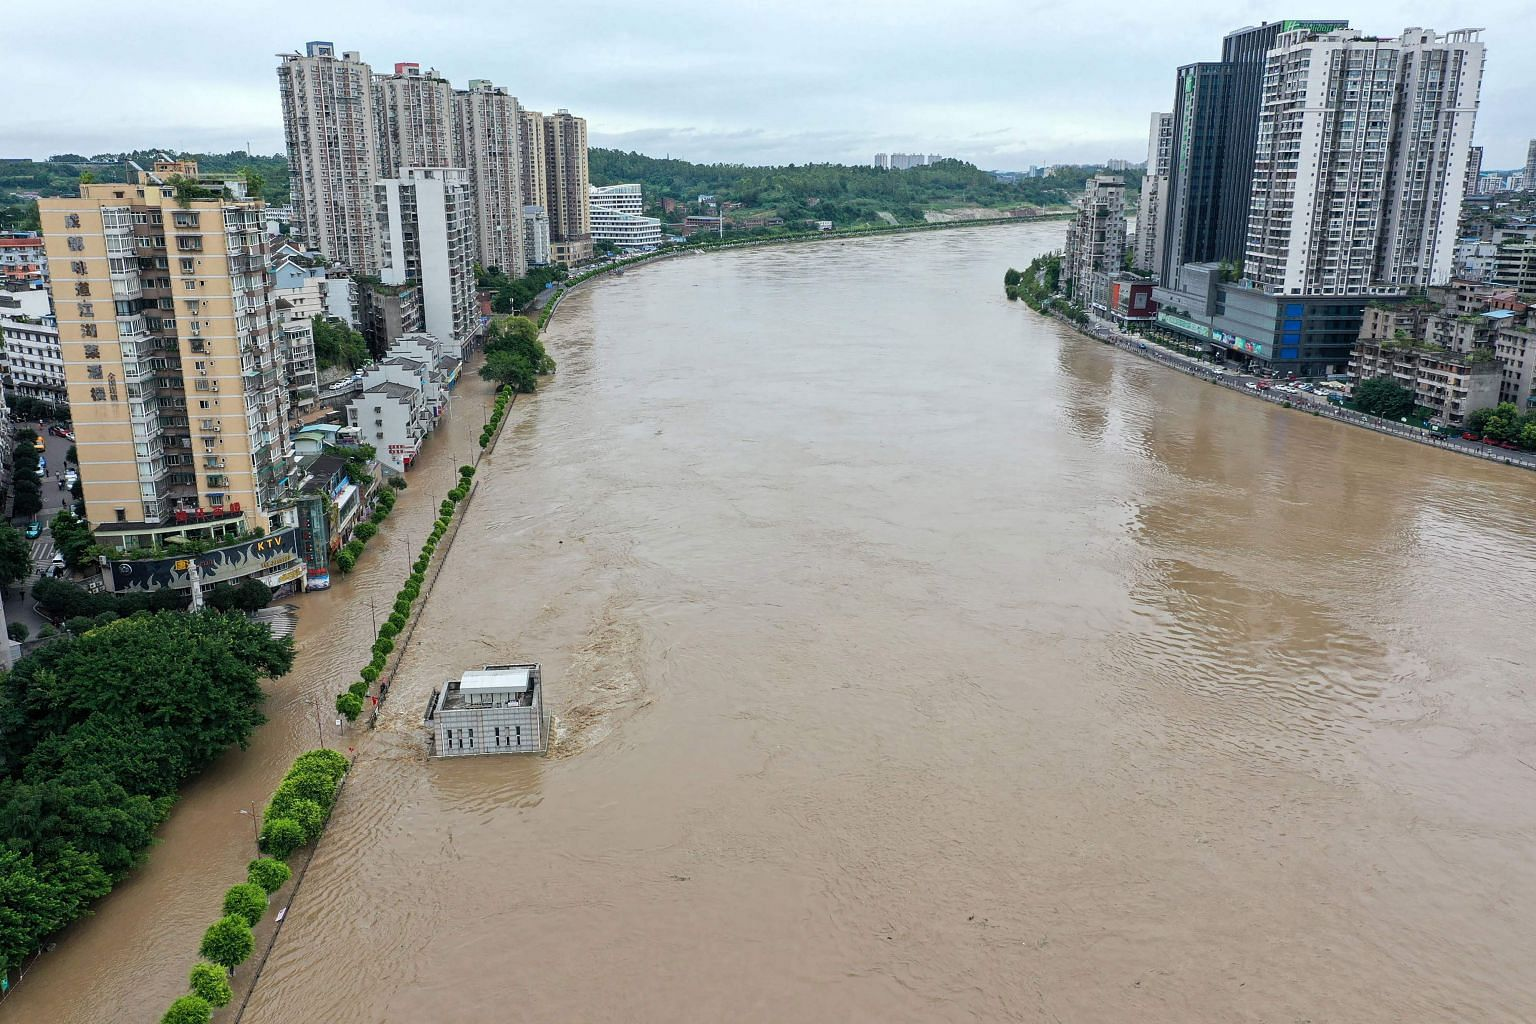 A swollen Tuojiang River yesterday, following heavy rain in south-western Sichuan province. Heavy rain lashed 27 out of 31 of the country's provinces since June this year. PHOTO: AGENCE FRANCE-PRESSE